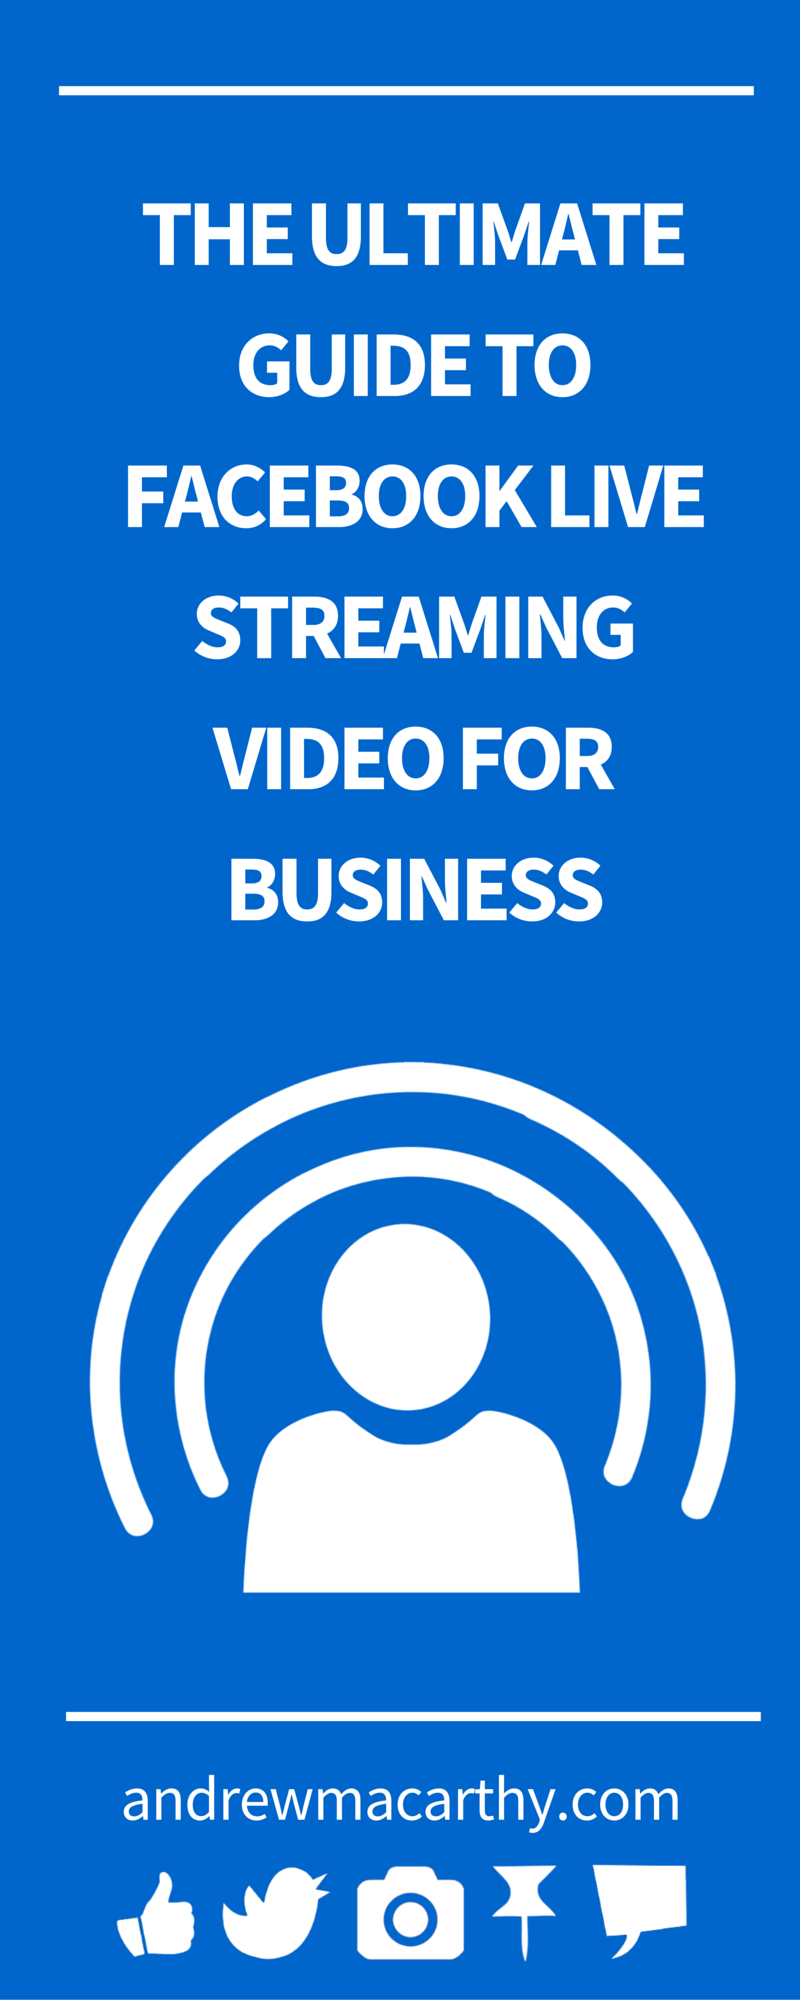 The Ultimate Guide to Facebook Live Streaming Video for Business